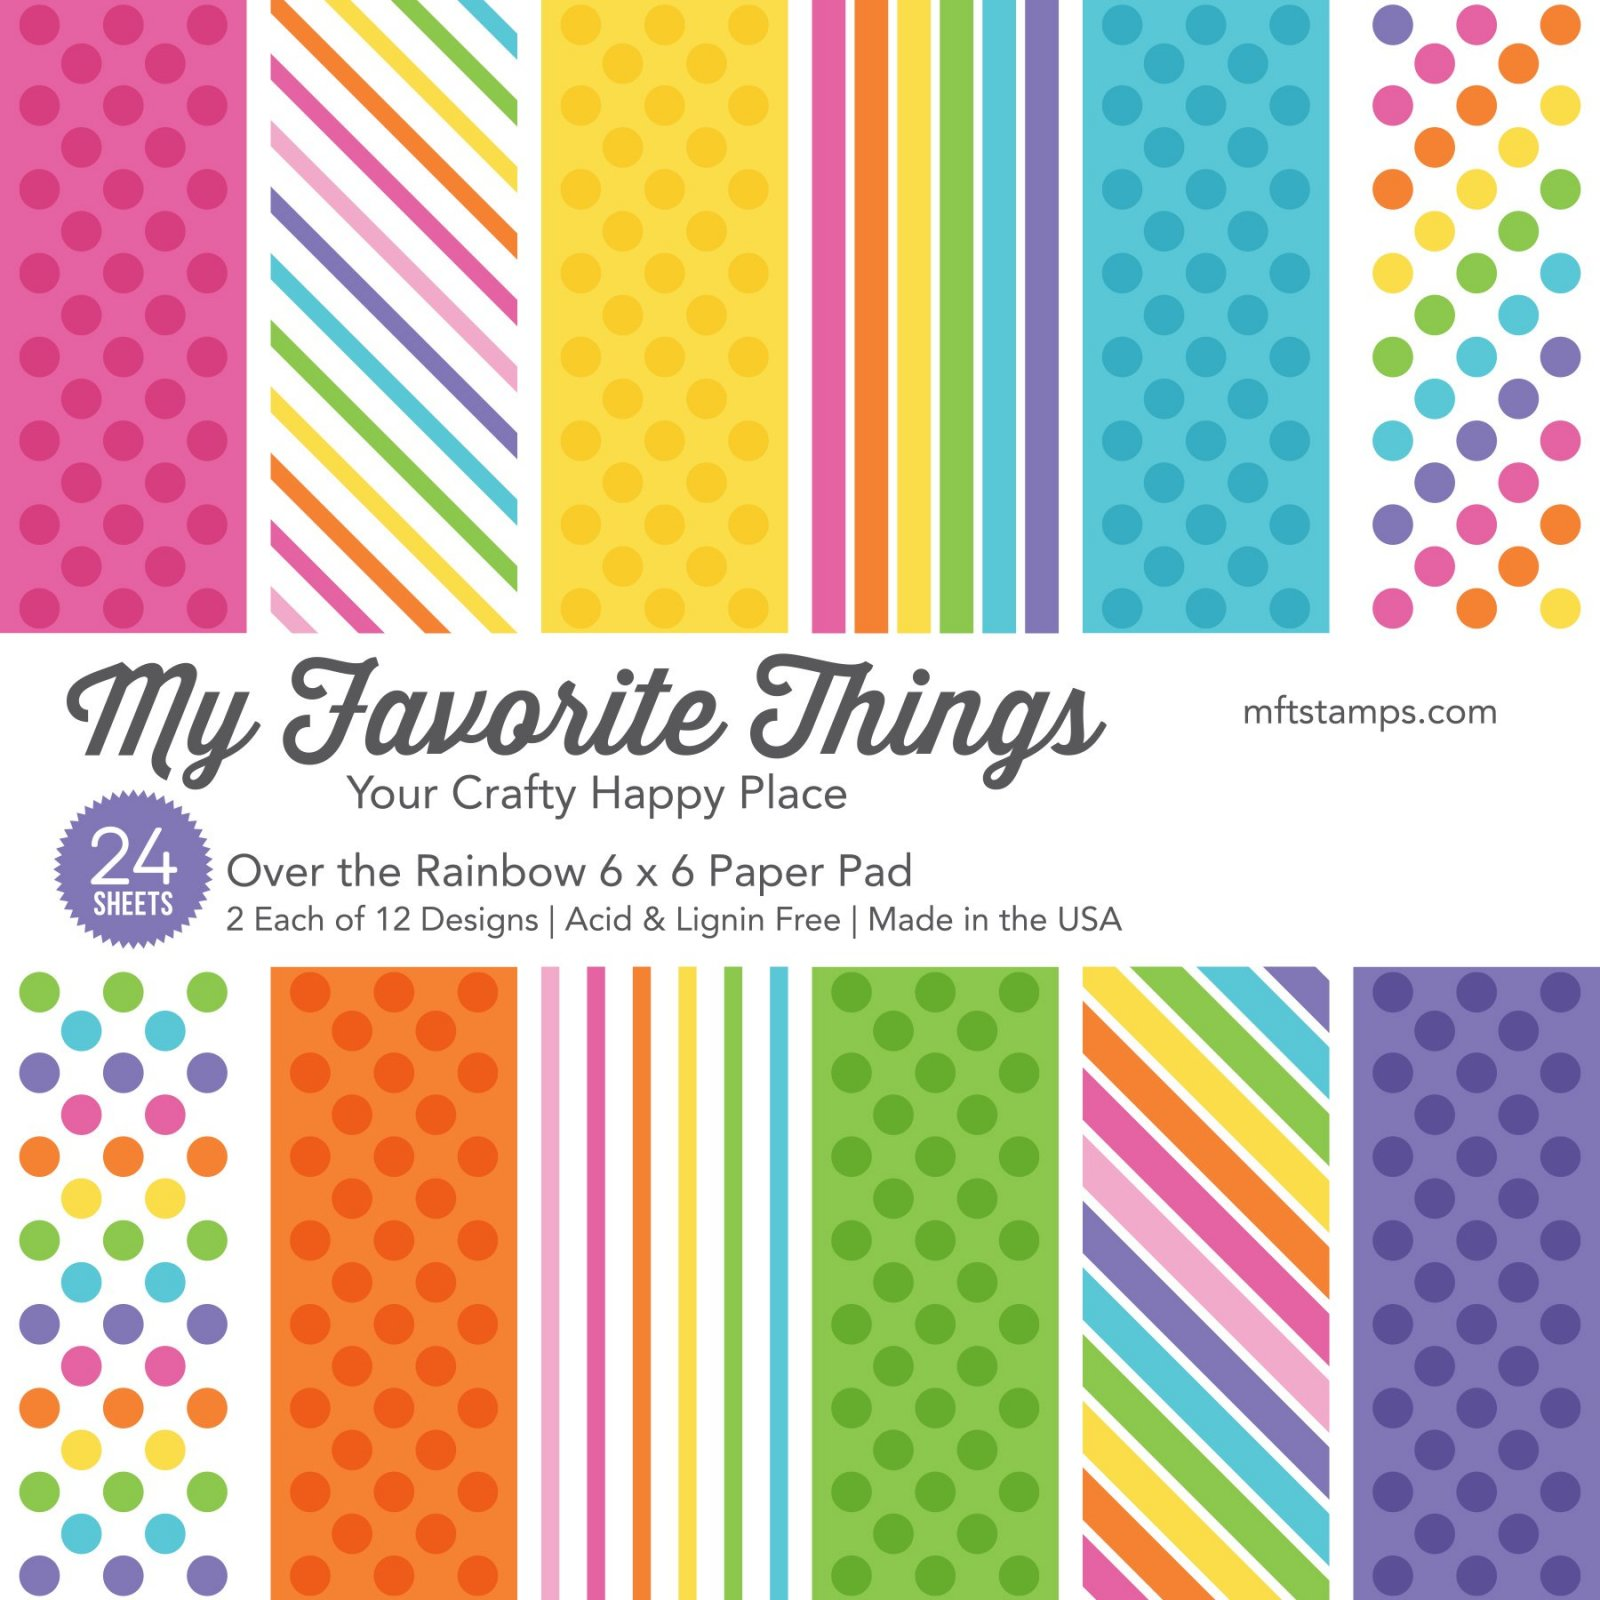 My Favorite Things 6x6 Paper Pad Over the Rainbow